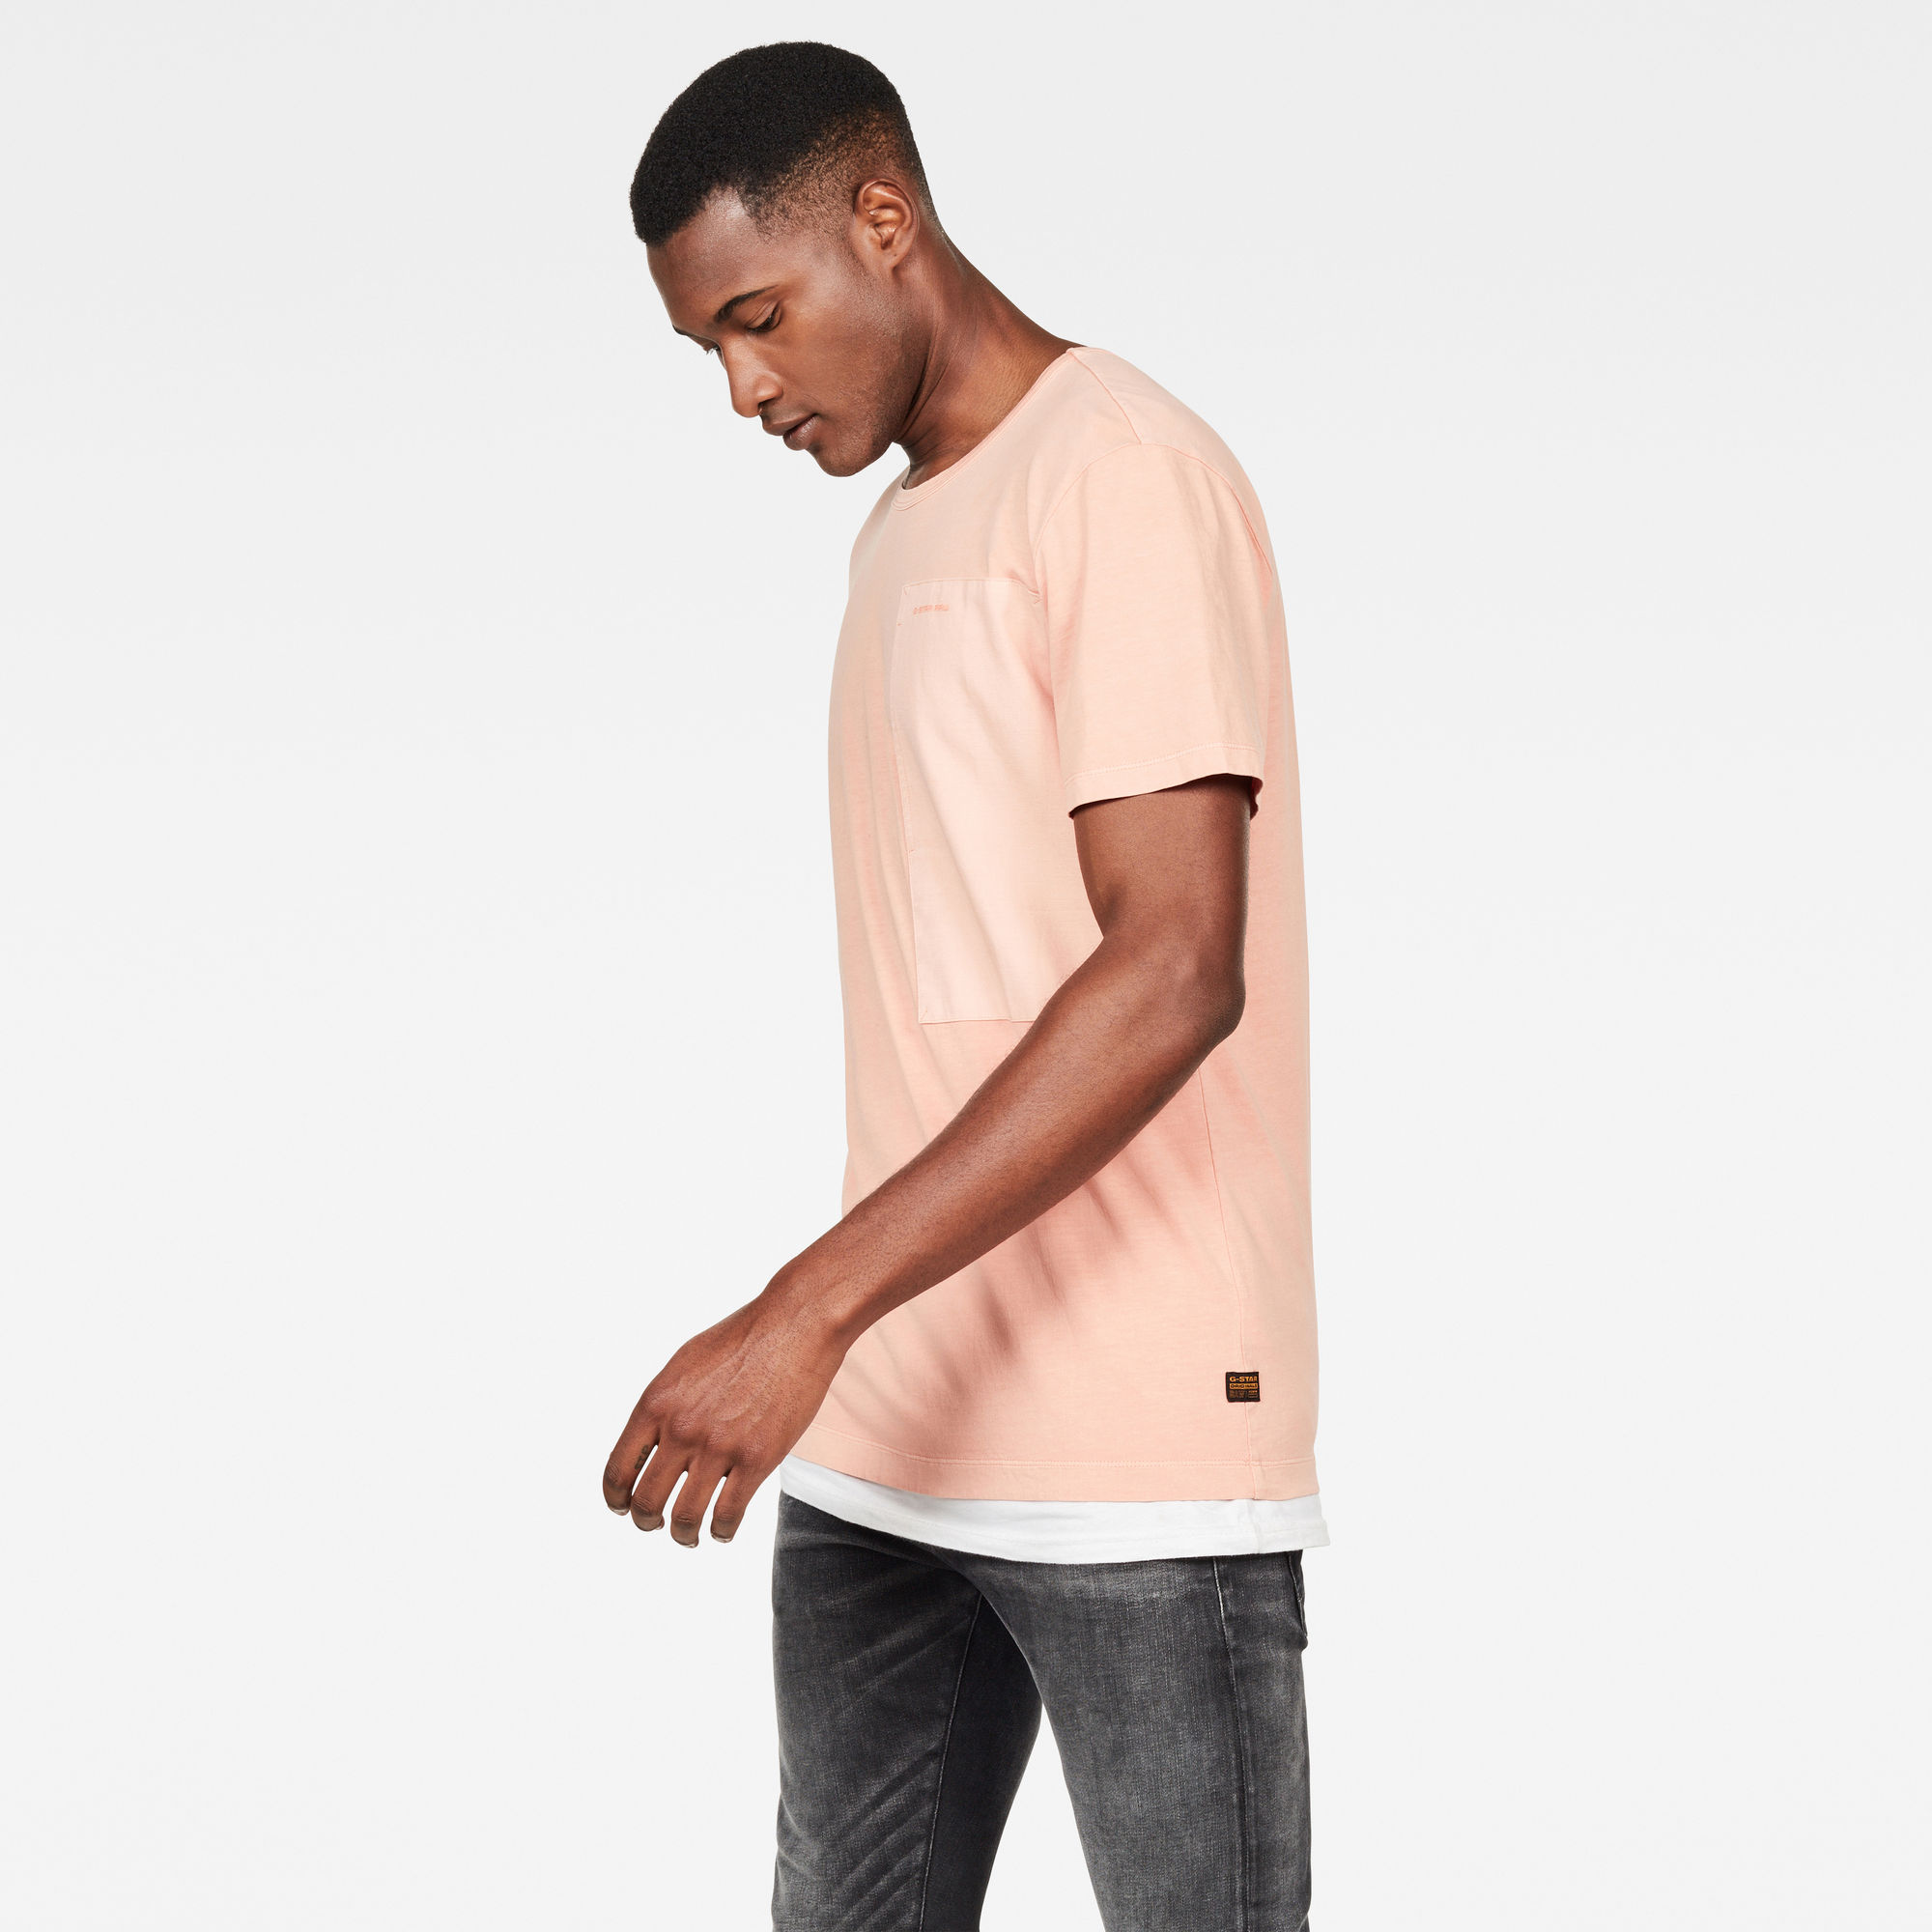 G-Star RAW Pocket T-Shirt